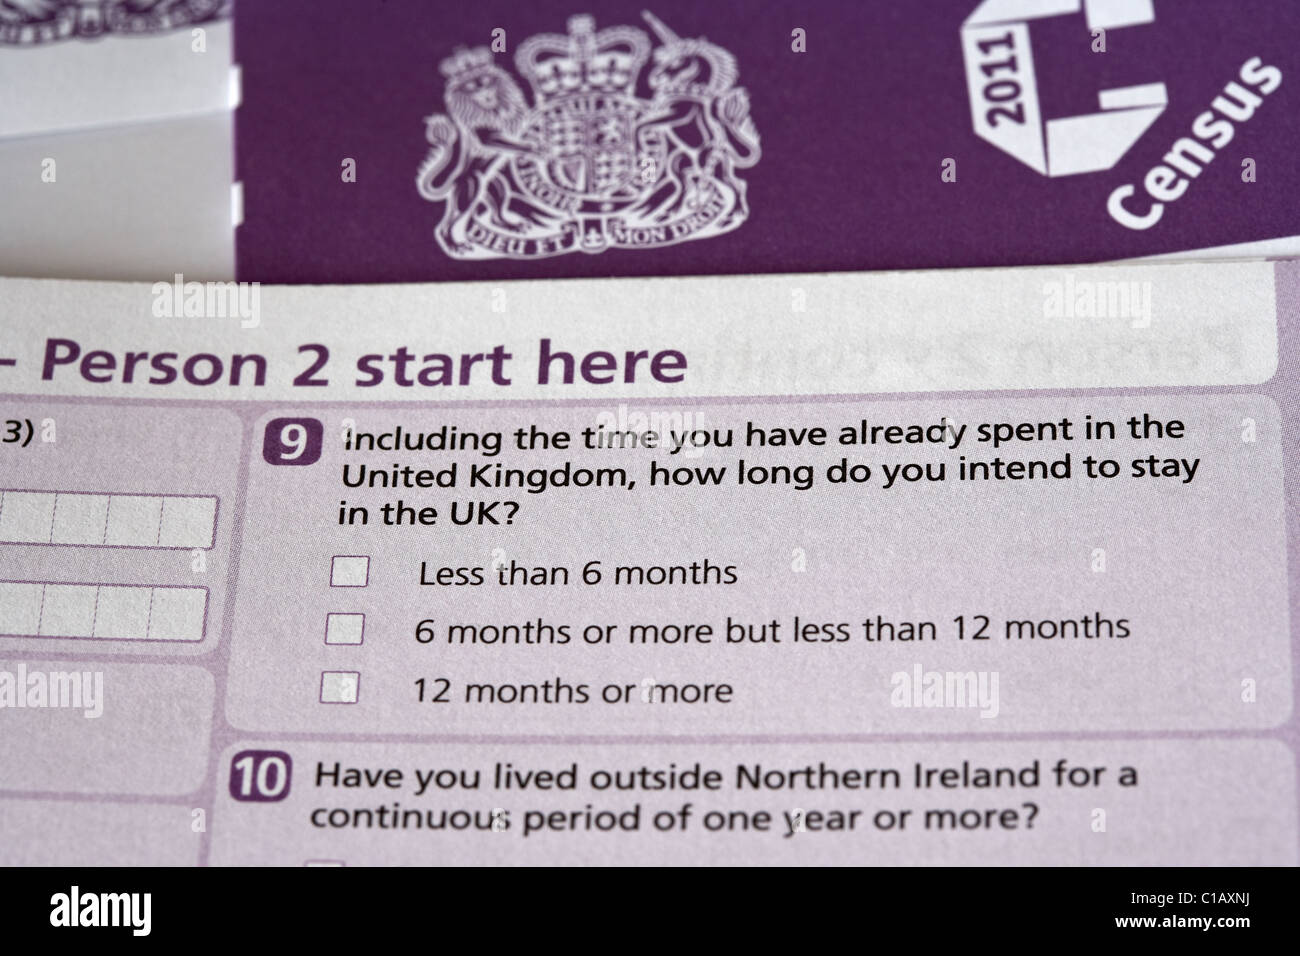 length of time in the UK question uk 2011 census forms as issued in Northern Ireland - Stock Image